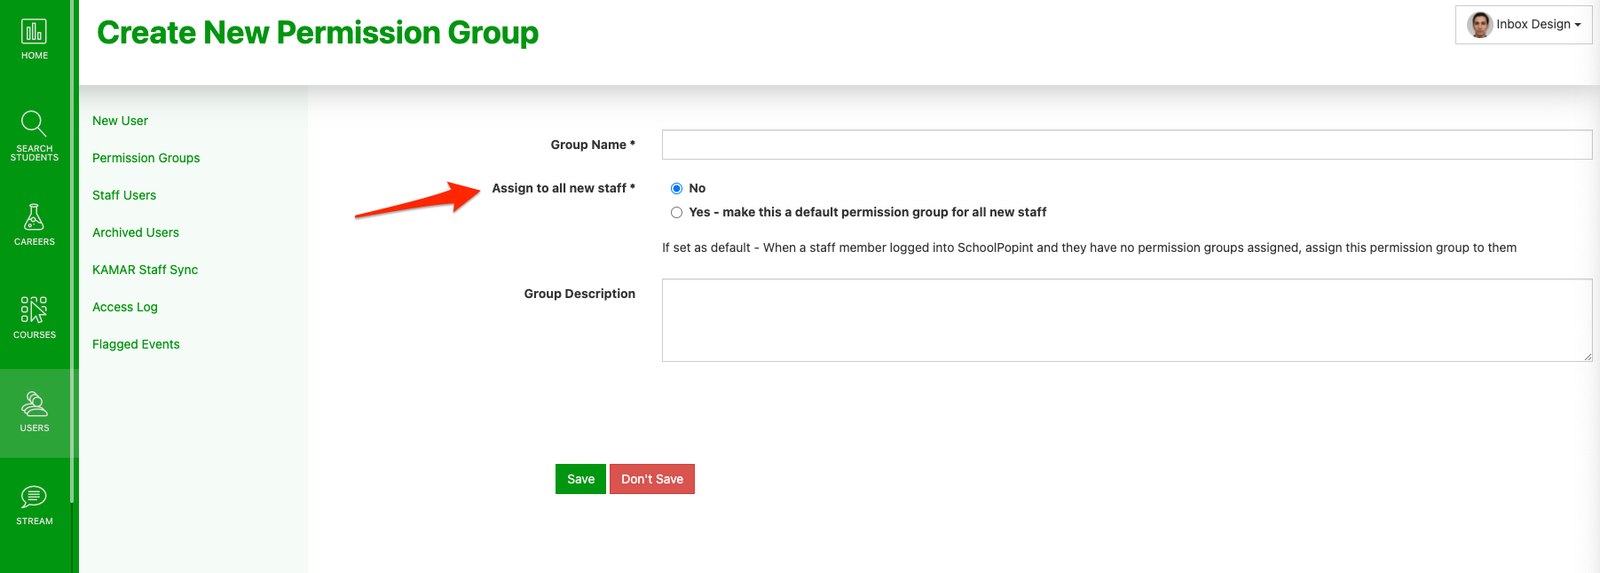 Assign default permissions to all new staff